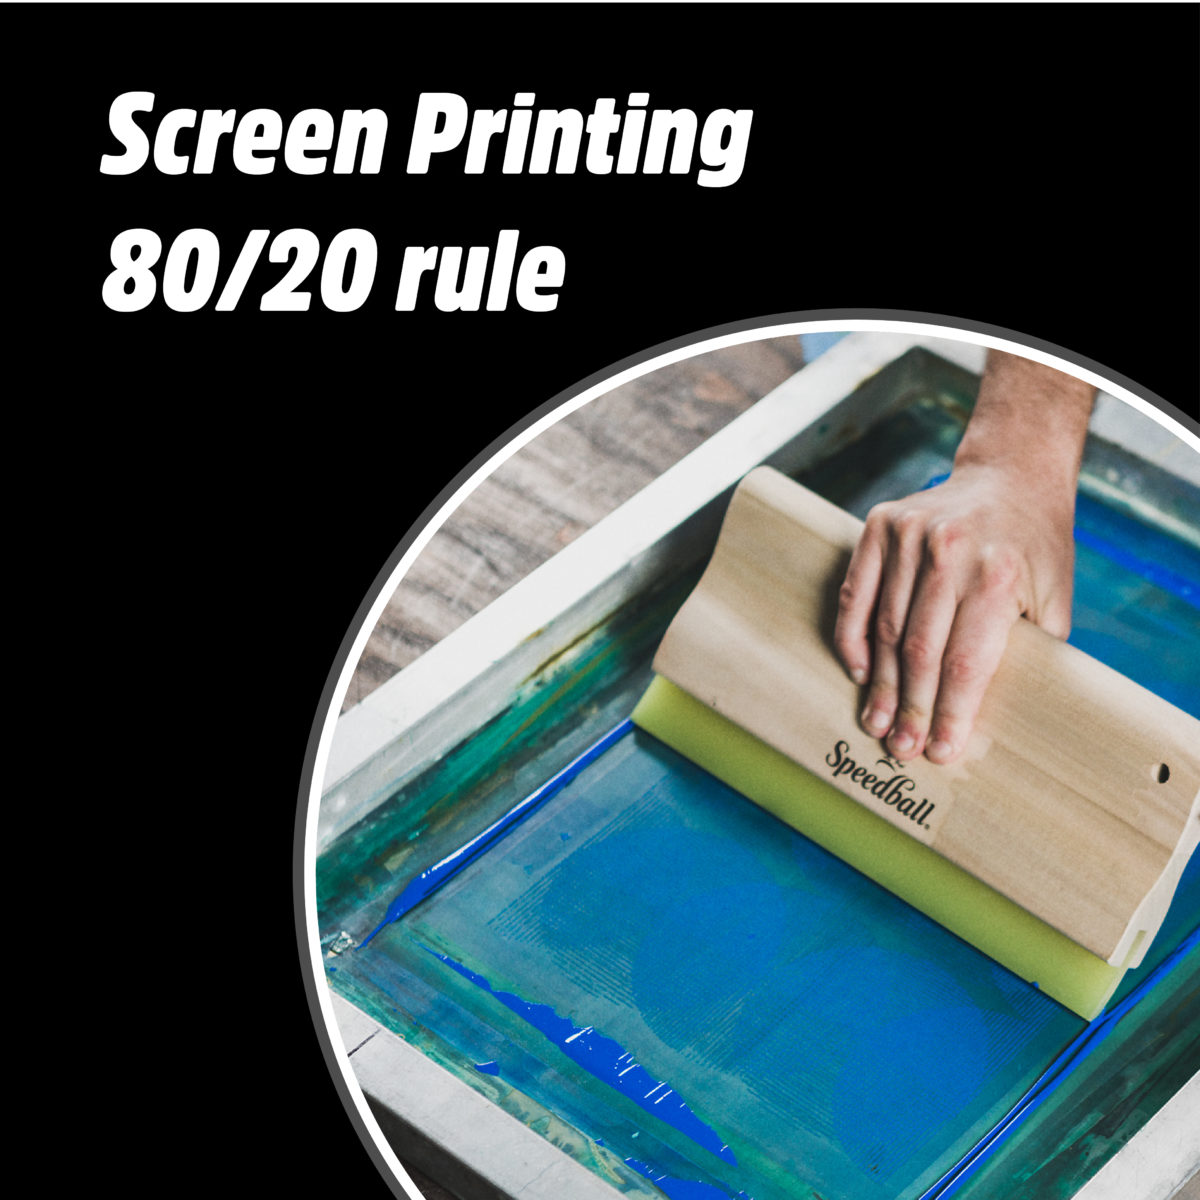 80/20 Rule In Screen Printing